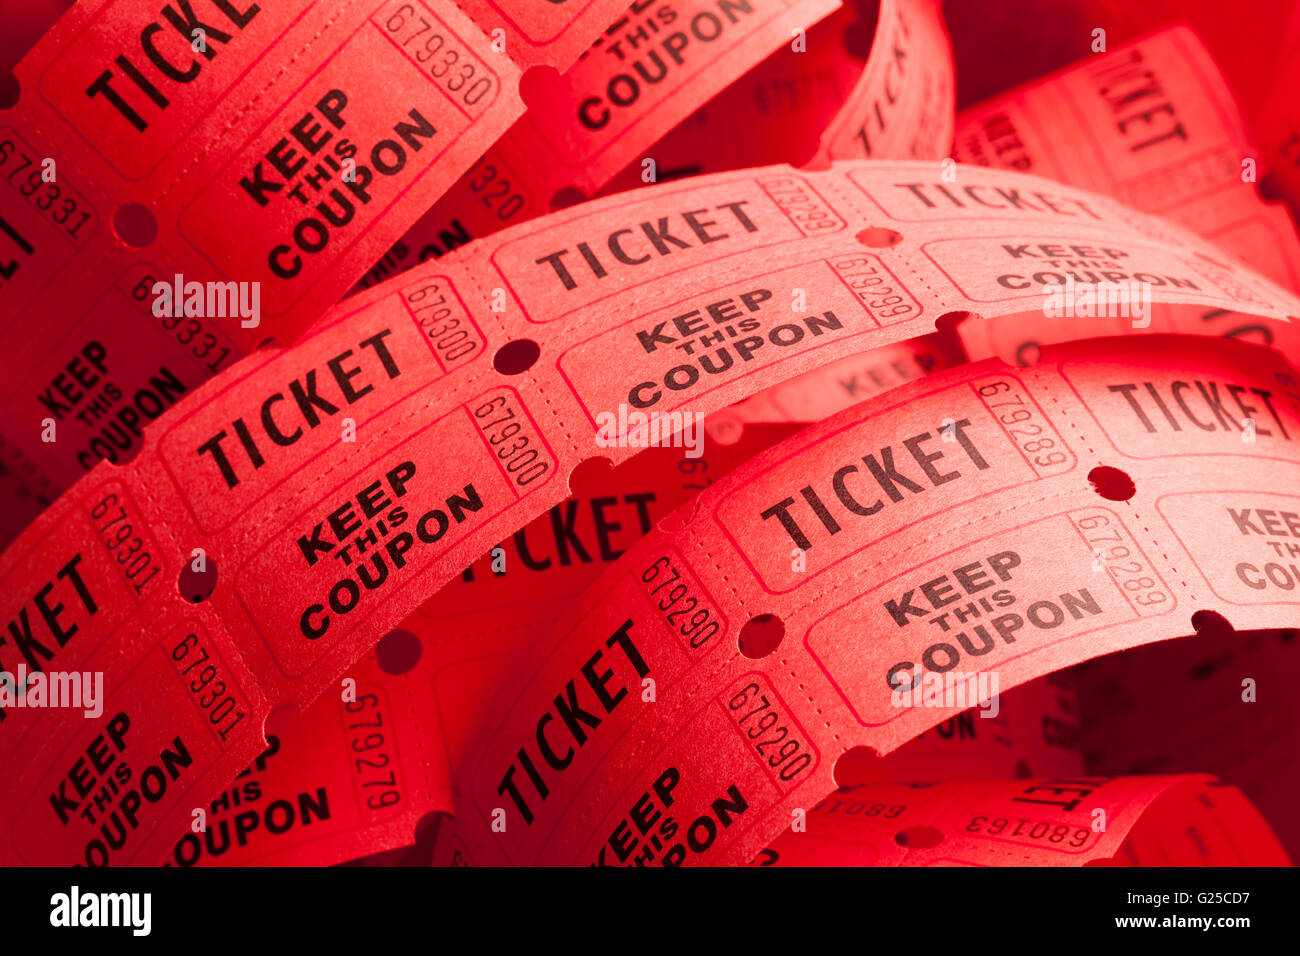 Unwound Messy Roll of Red Tickets Piled Up. - Stock Image